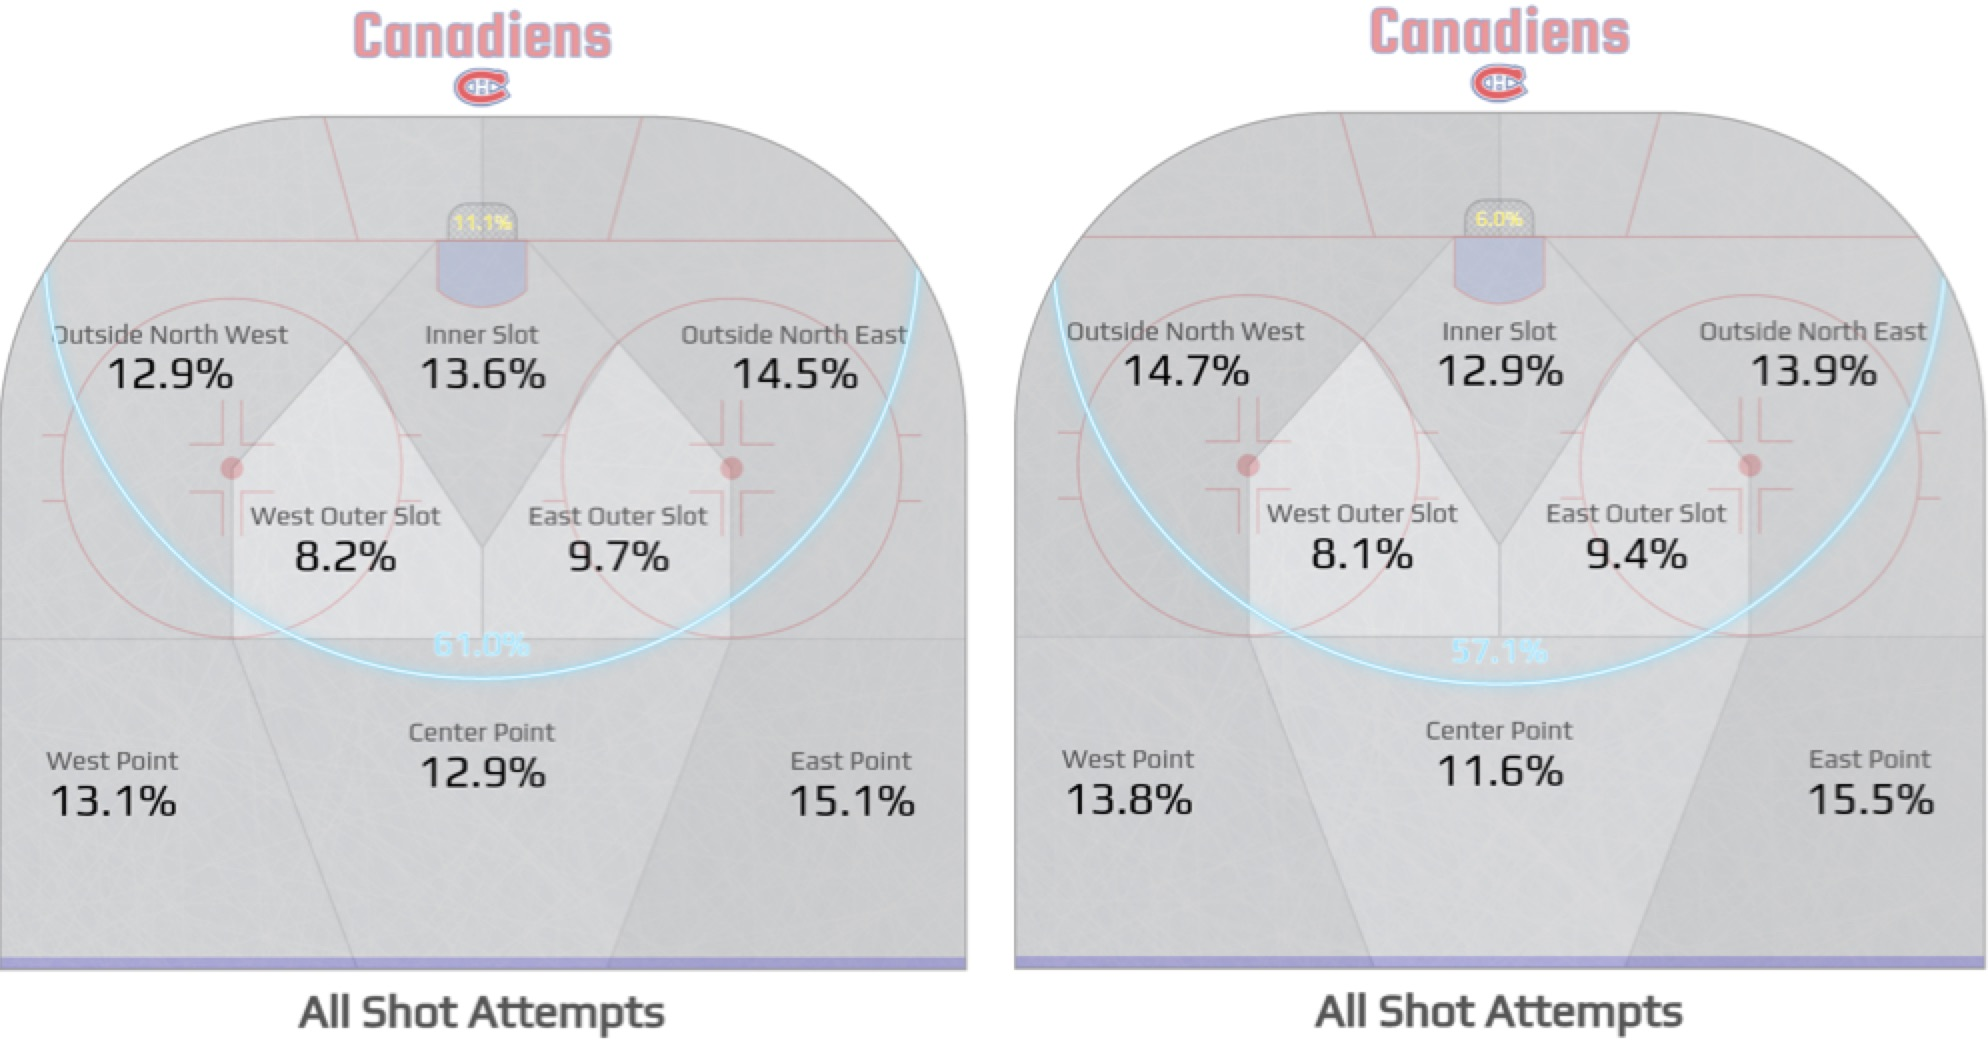 Canadiens shot quality